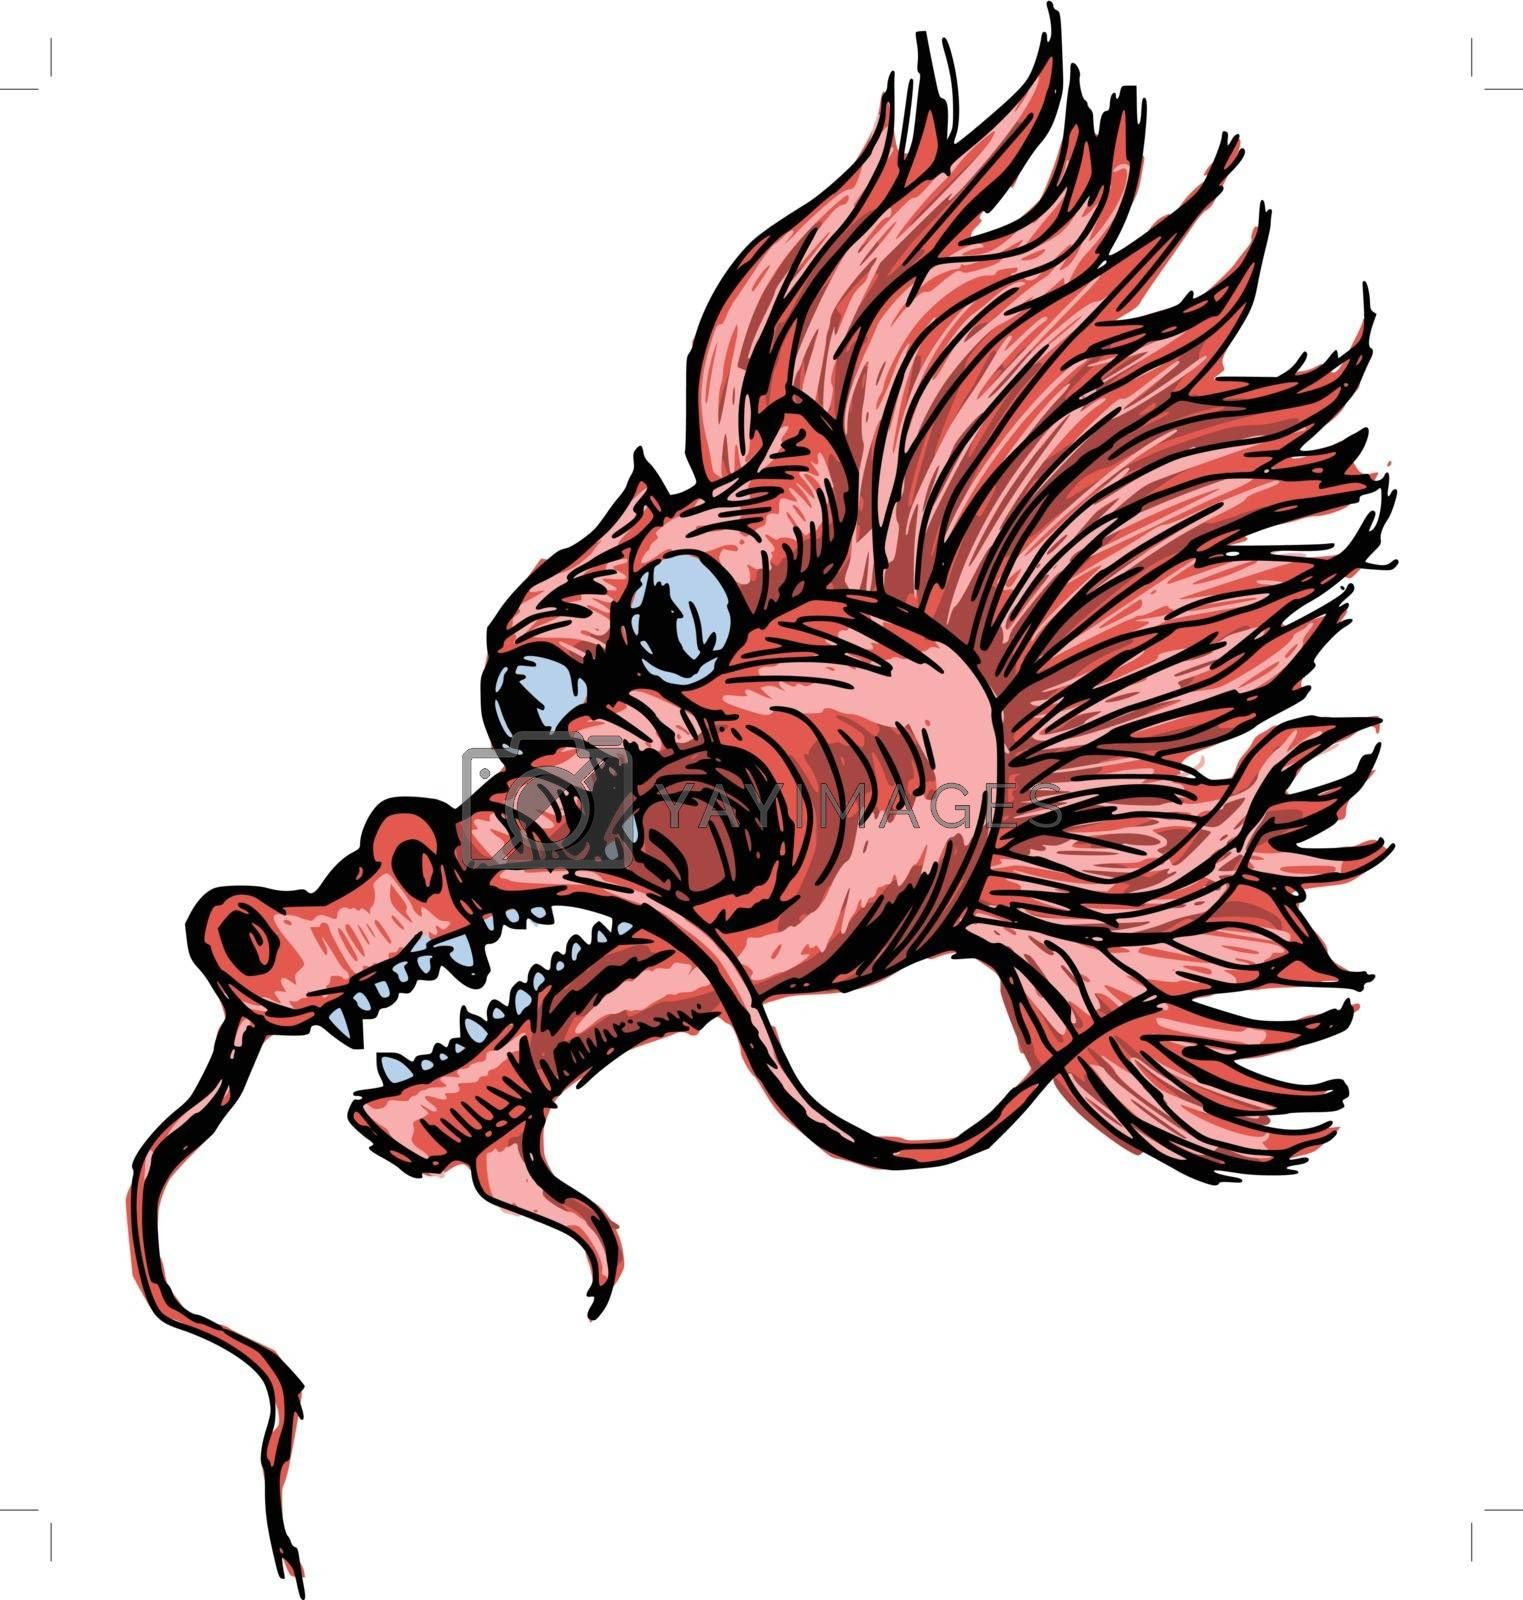 hand drawn, sketch, cartoon illustration of Chinese dragon